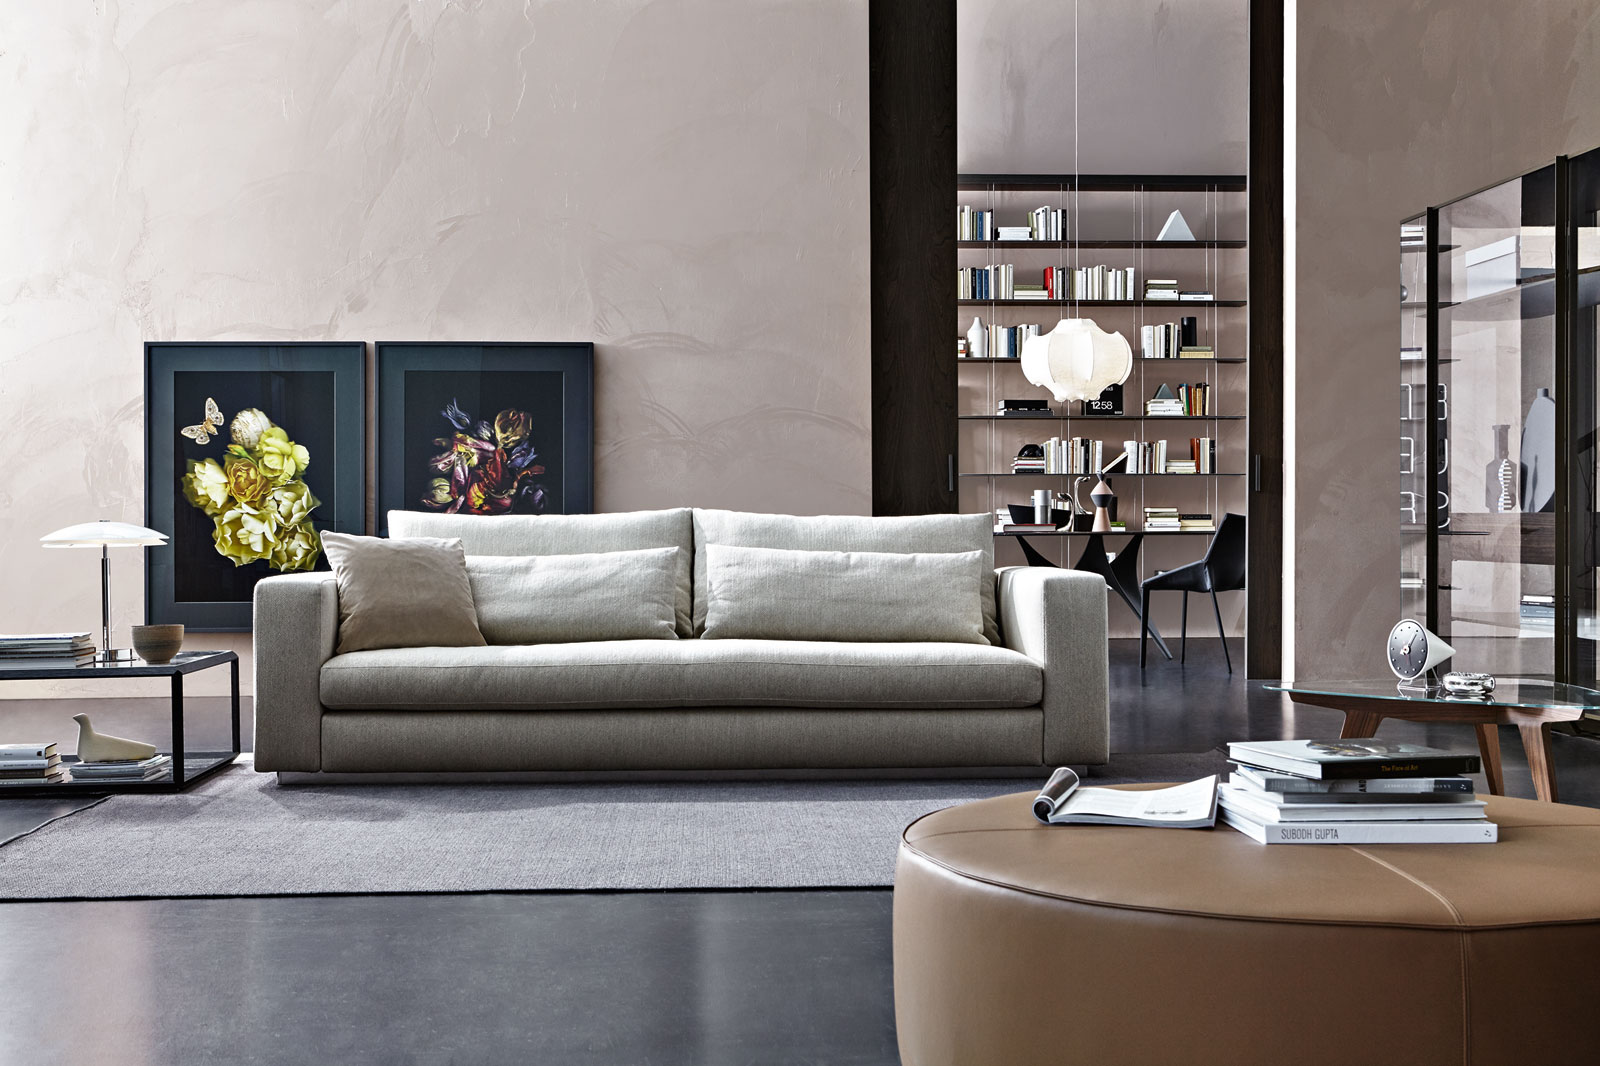 molteni c reversi xl sofa buy from campbell watson uk. Black Bedroom Furniture Sets. Home Design Ideas